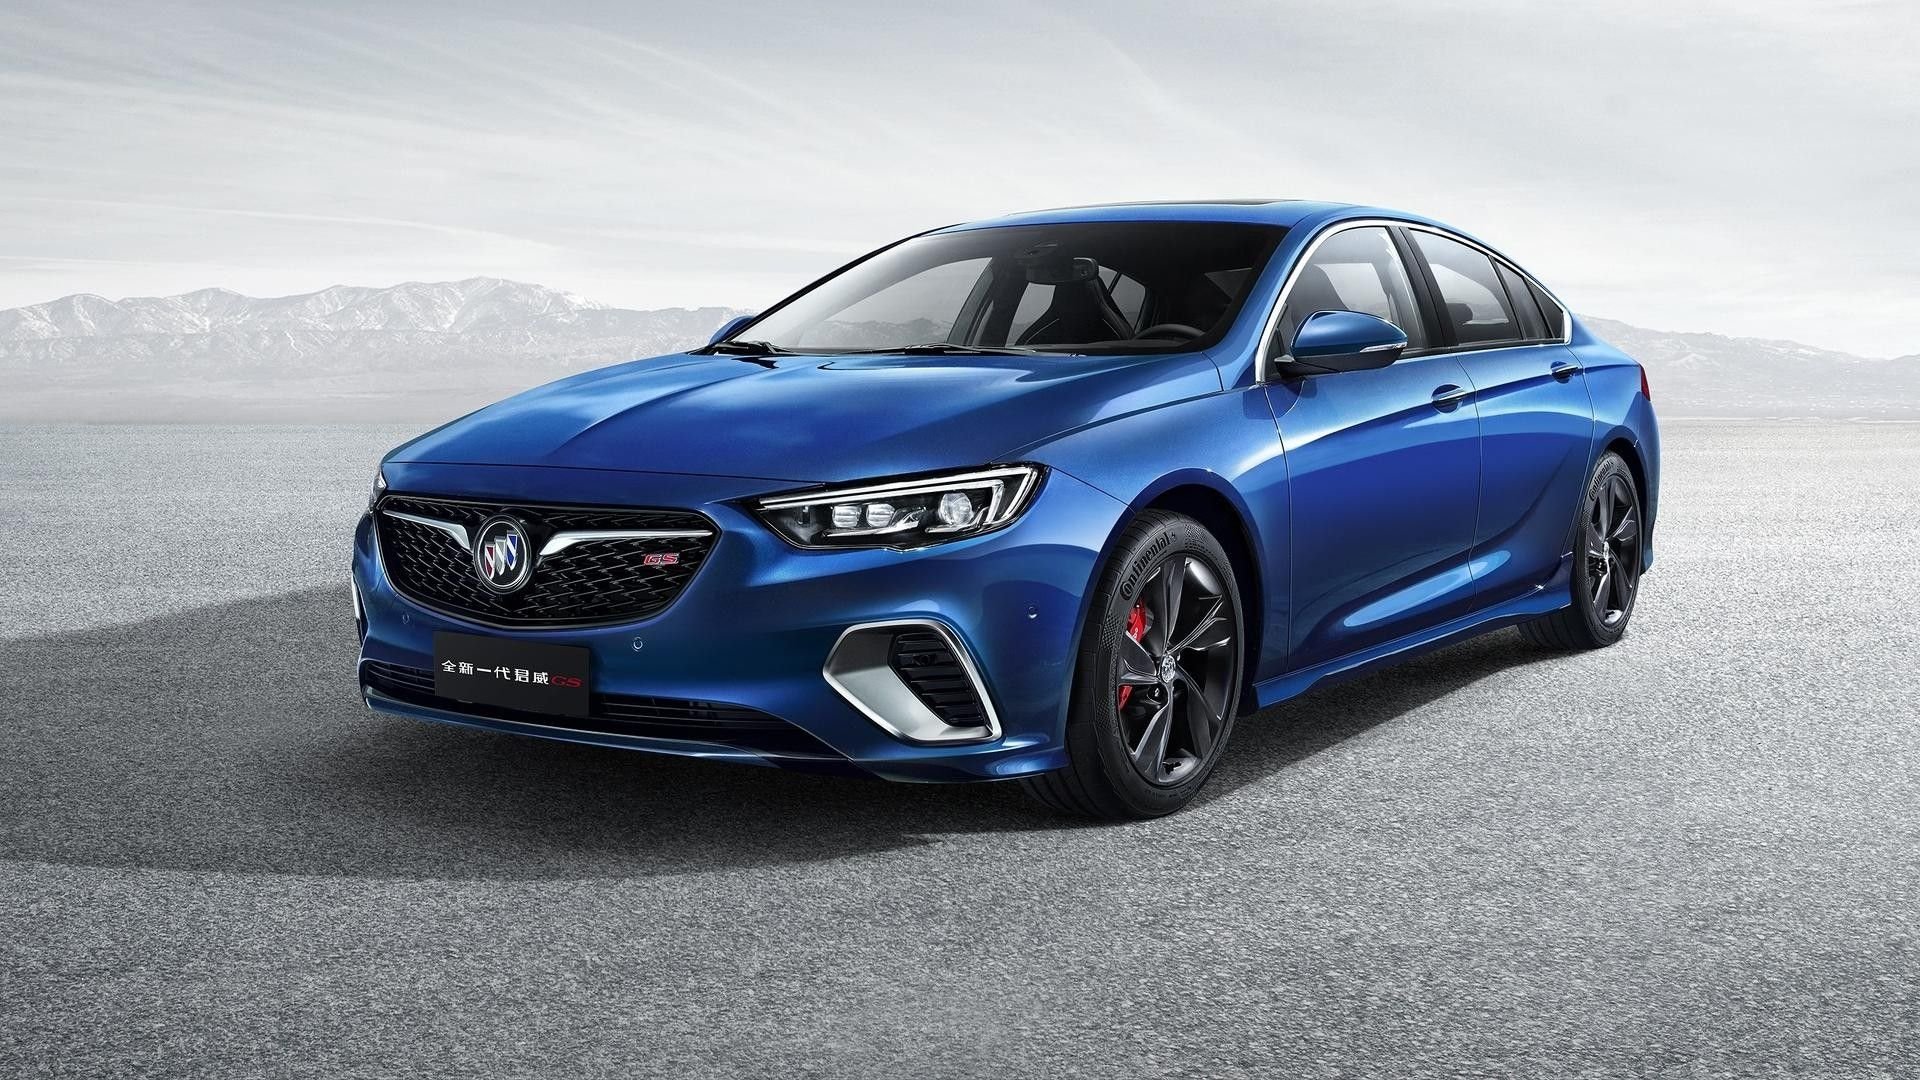 36 All New 2019 Buick Regal Gs Coupe Redesign and Concept